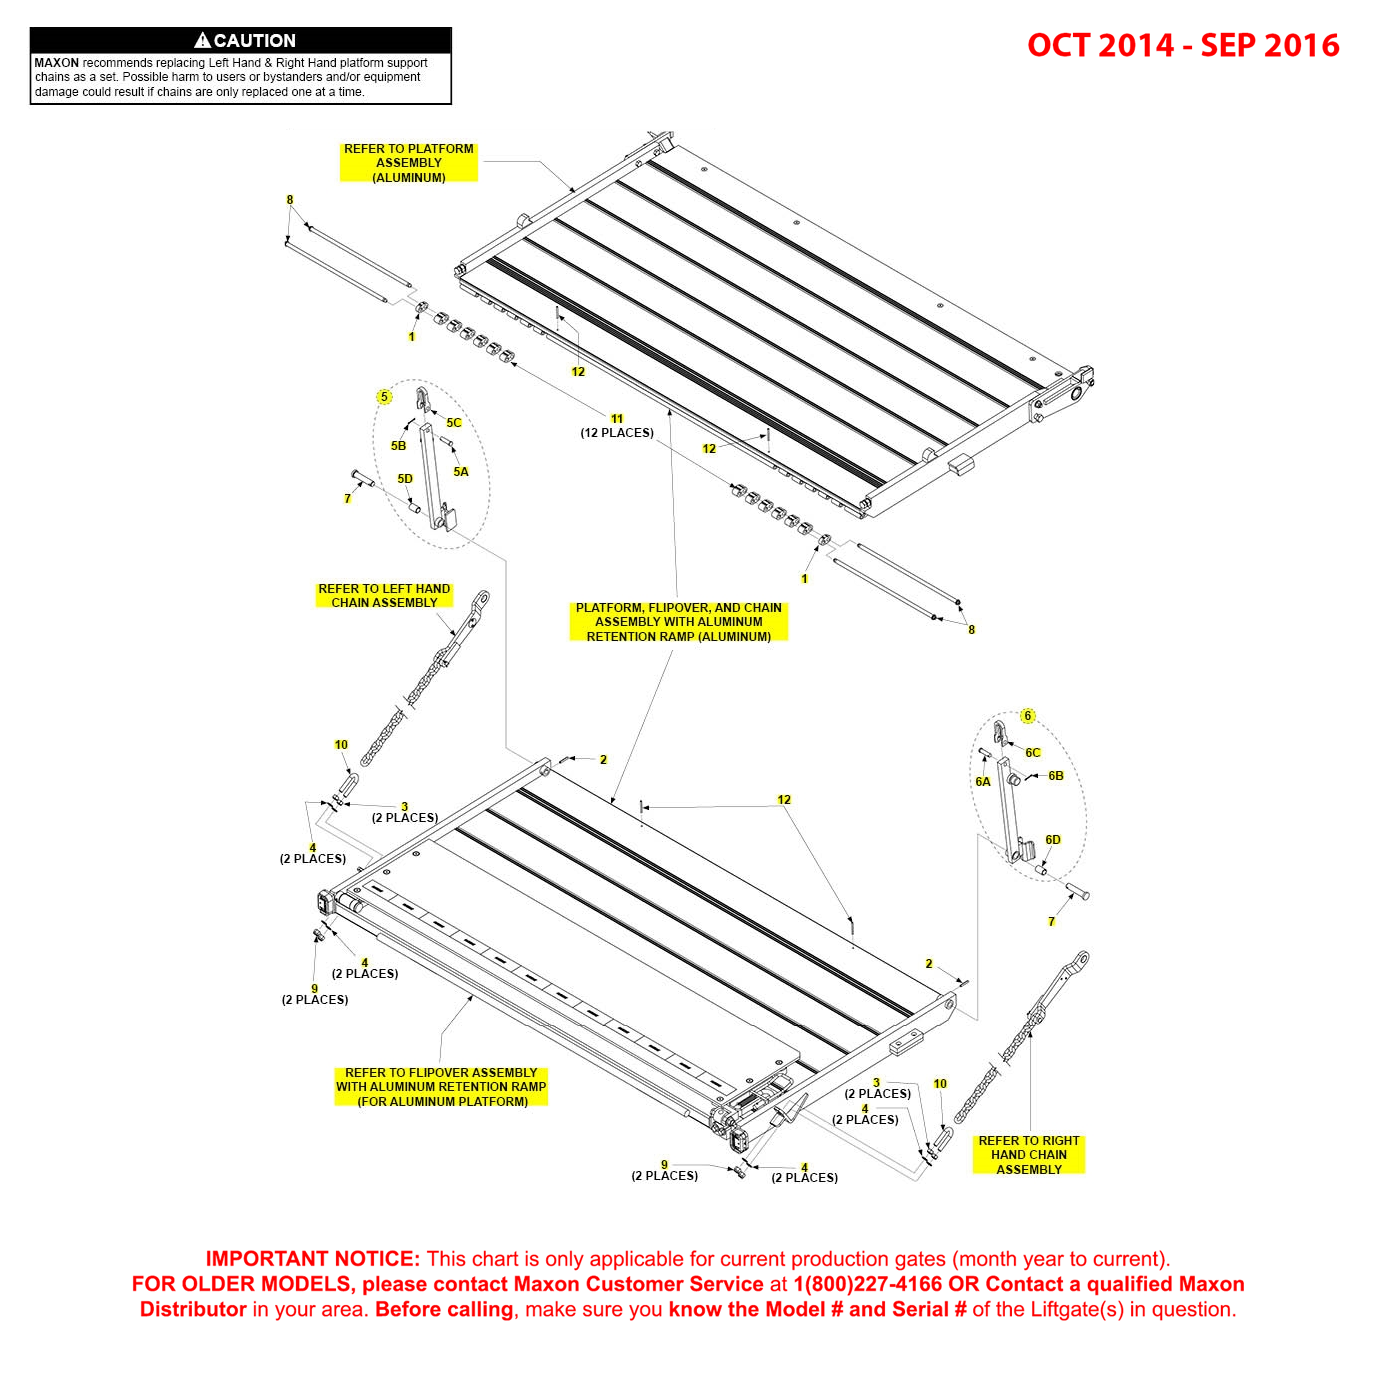 BMR (Oct 2014 - Sep 2016) Aluminum Platform Flipover And Chain Assembly With Aluminum Retention Ramp